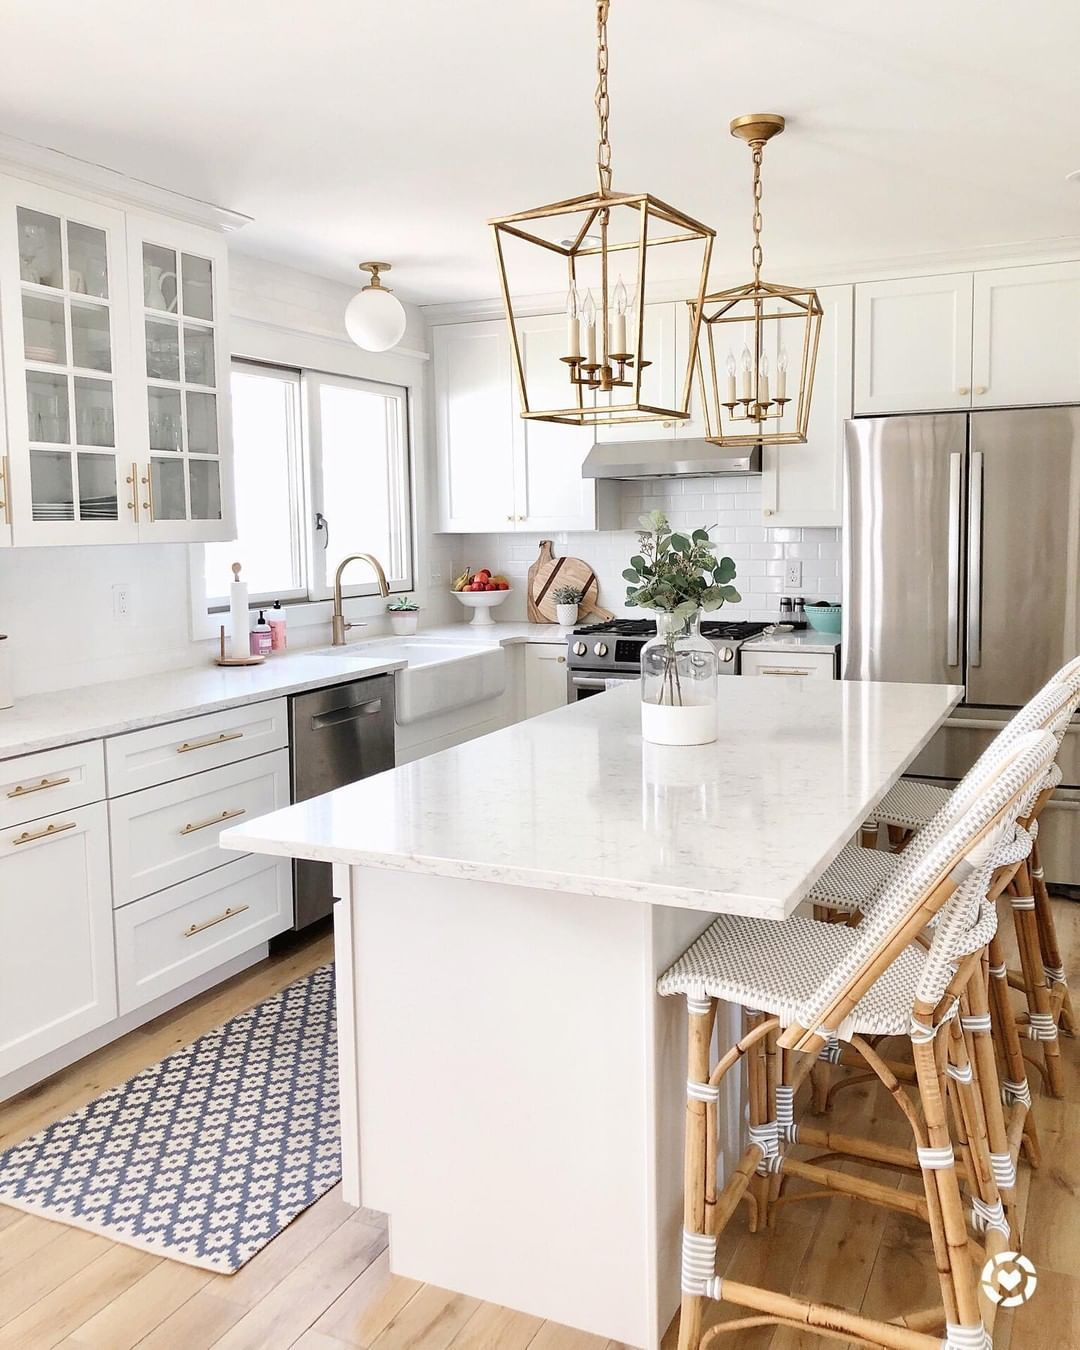 Ltkhome On Instagram Follow Andrea Wiele In The Liketoknow It App To Shop Her Kitchen Detai In 2020 White Kitchen Design Beautiful Kitchen Cabinets Kitchen Design